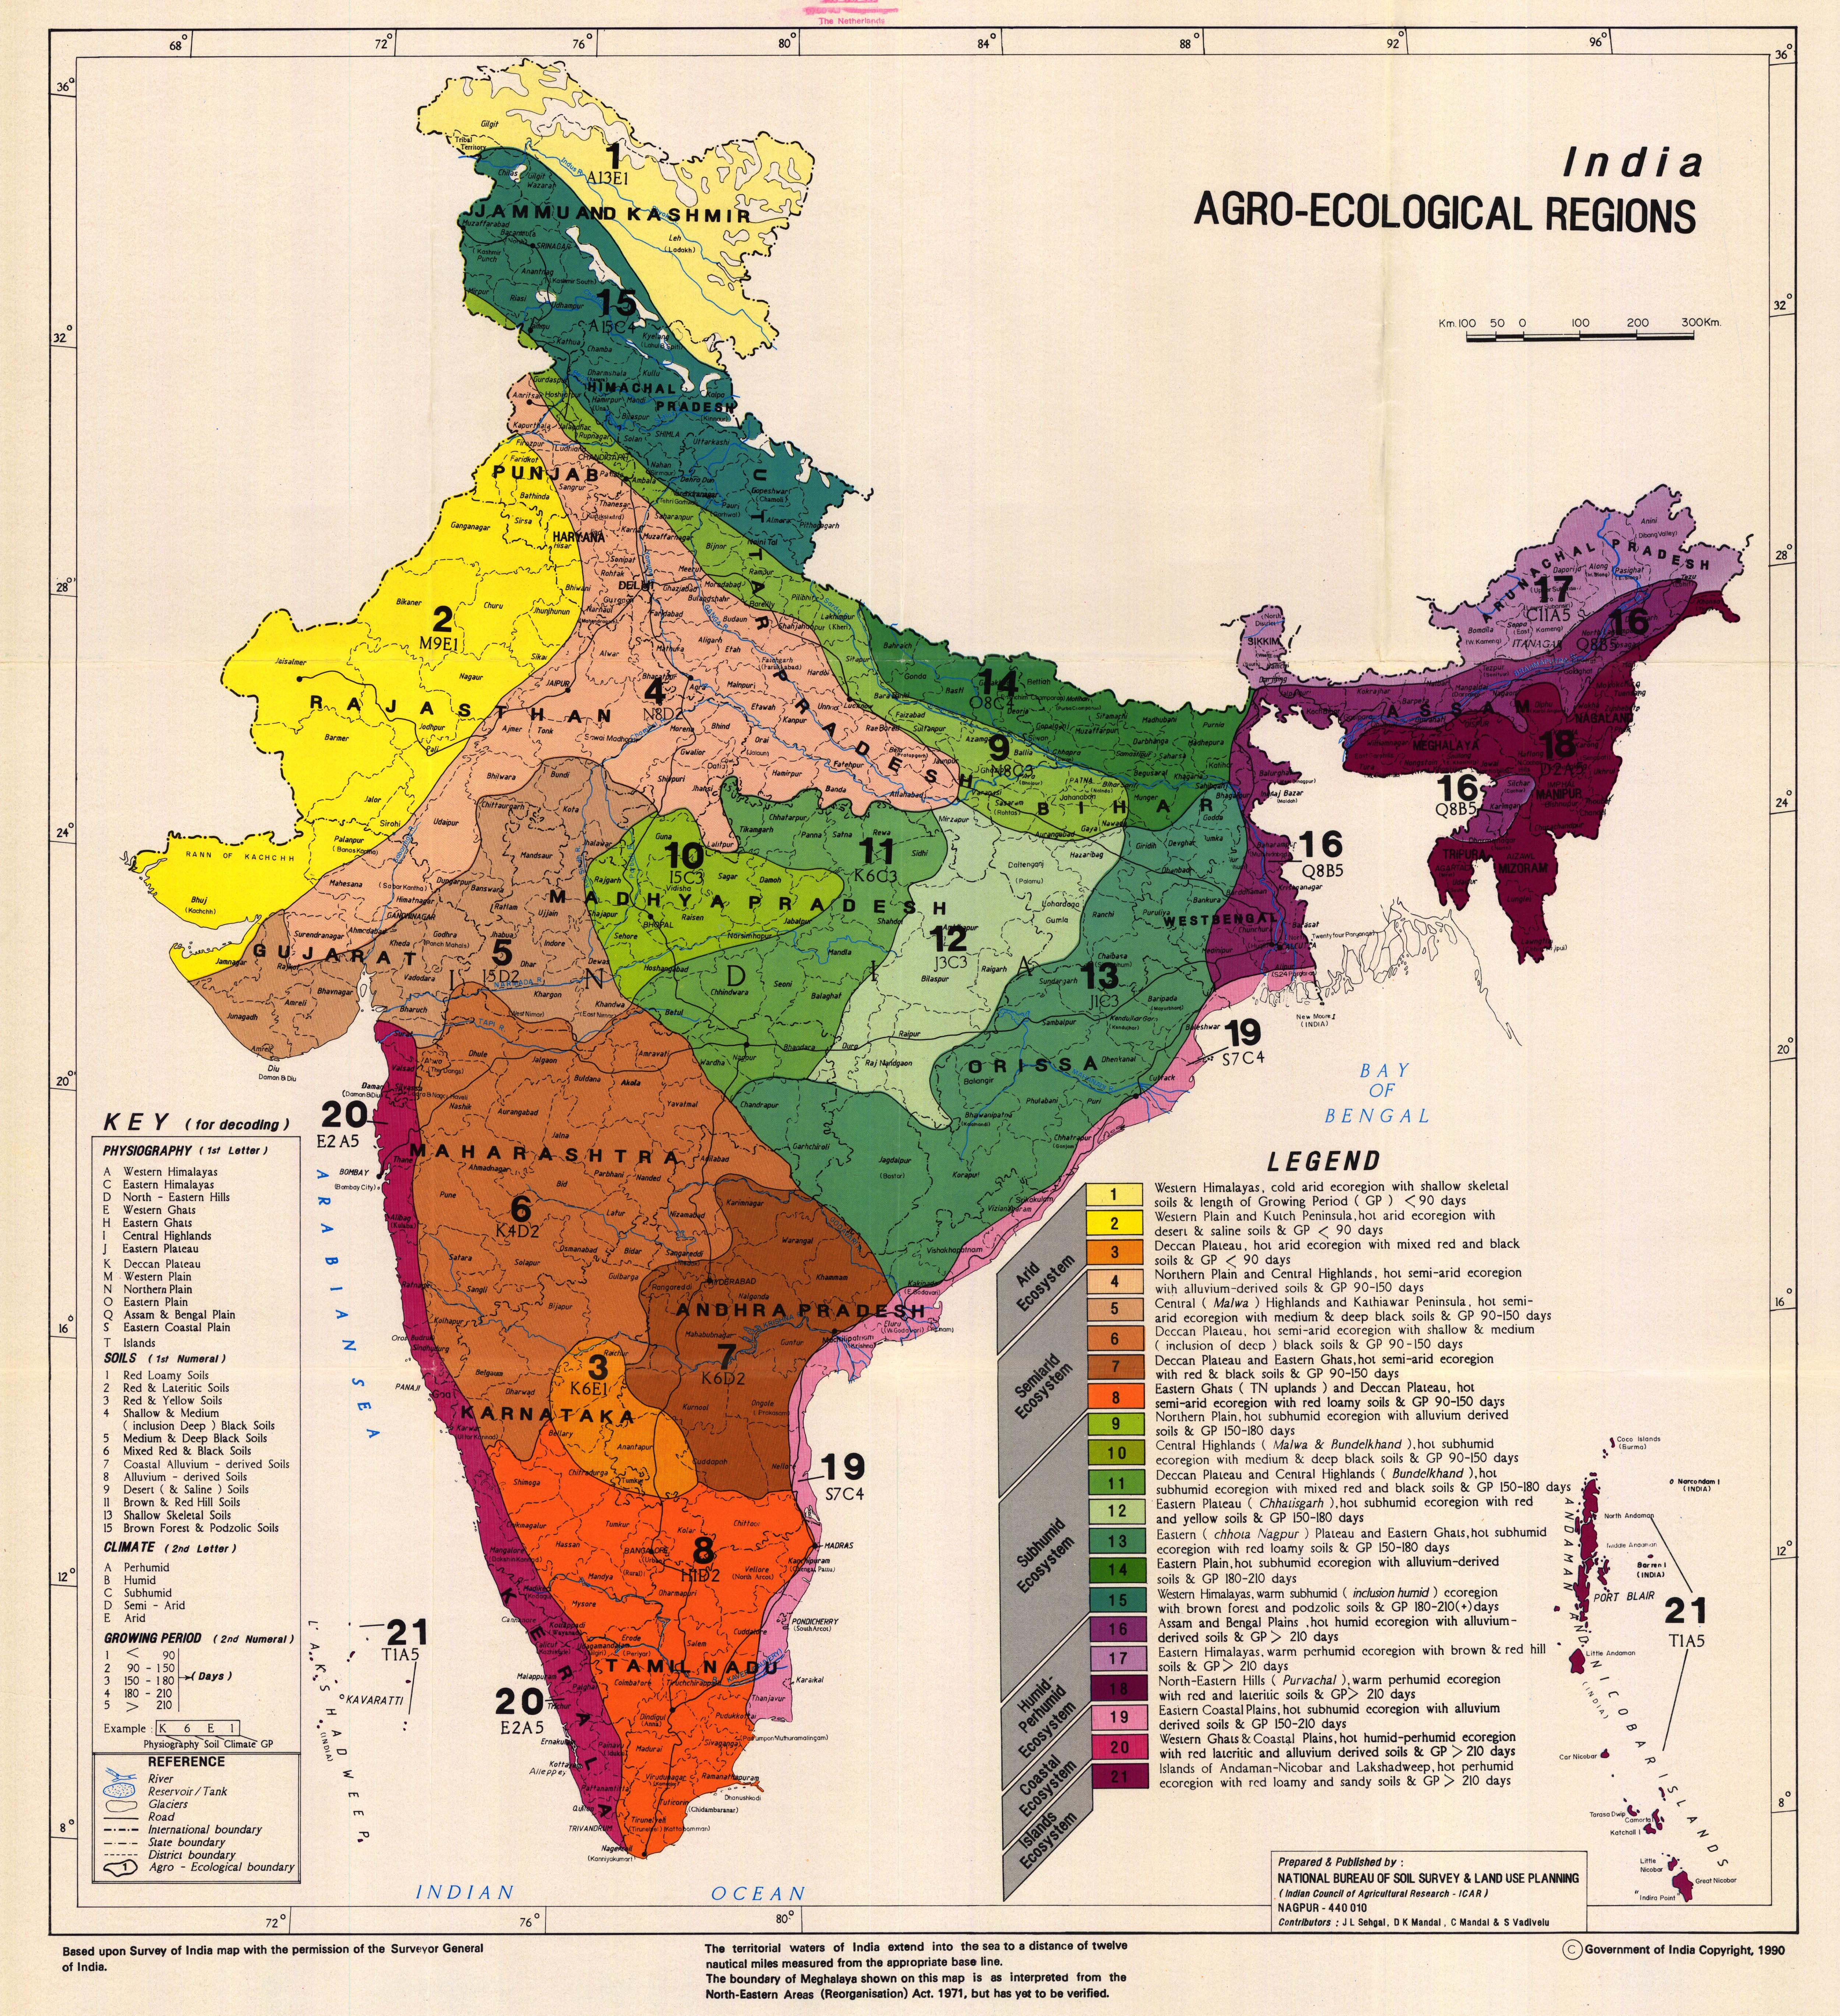 agriculture thematic map of india The Soil Maps Of Asia Display Maps agriculture thematic map of india